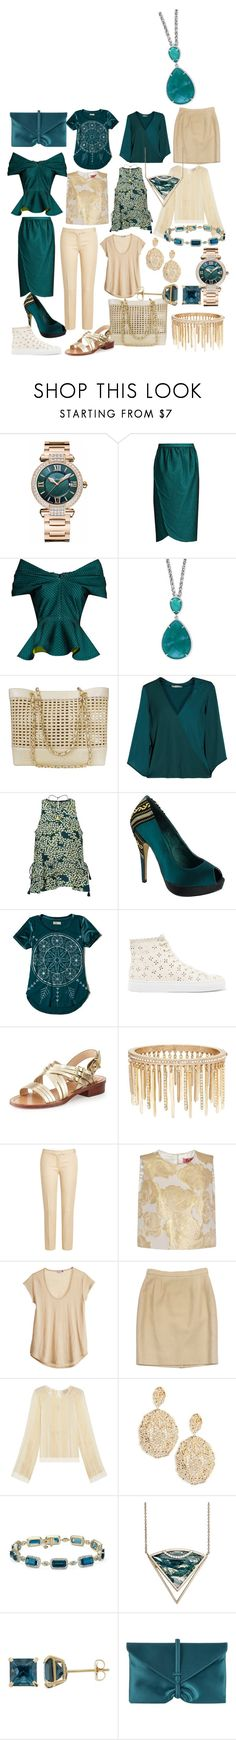 """The teal and tan mostly dressy capsule wardrobe"" by tharusmiles ❤ liked on Polyvore featuring Chopard, Emilio De La Morena, Effy Jewelry, Chanel, Halston Heritage, Scotch & Soda, Menbur, Hollister Co., Simone Rocha and Pour La Victoire"